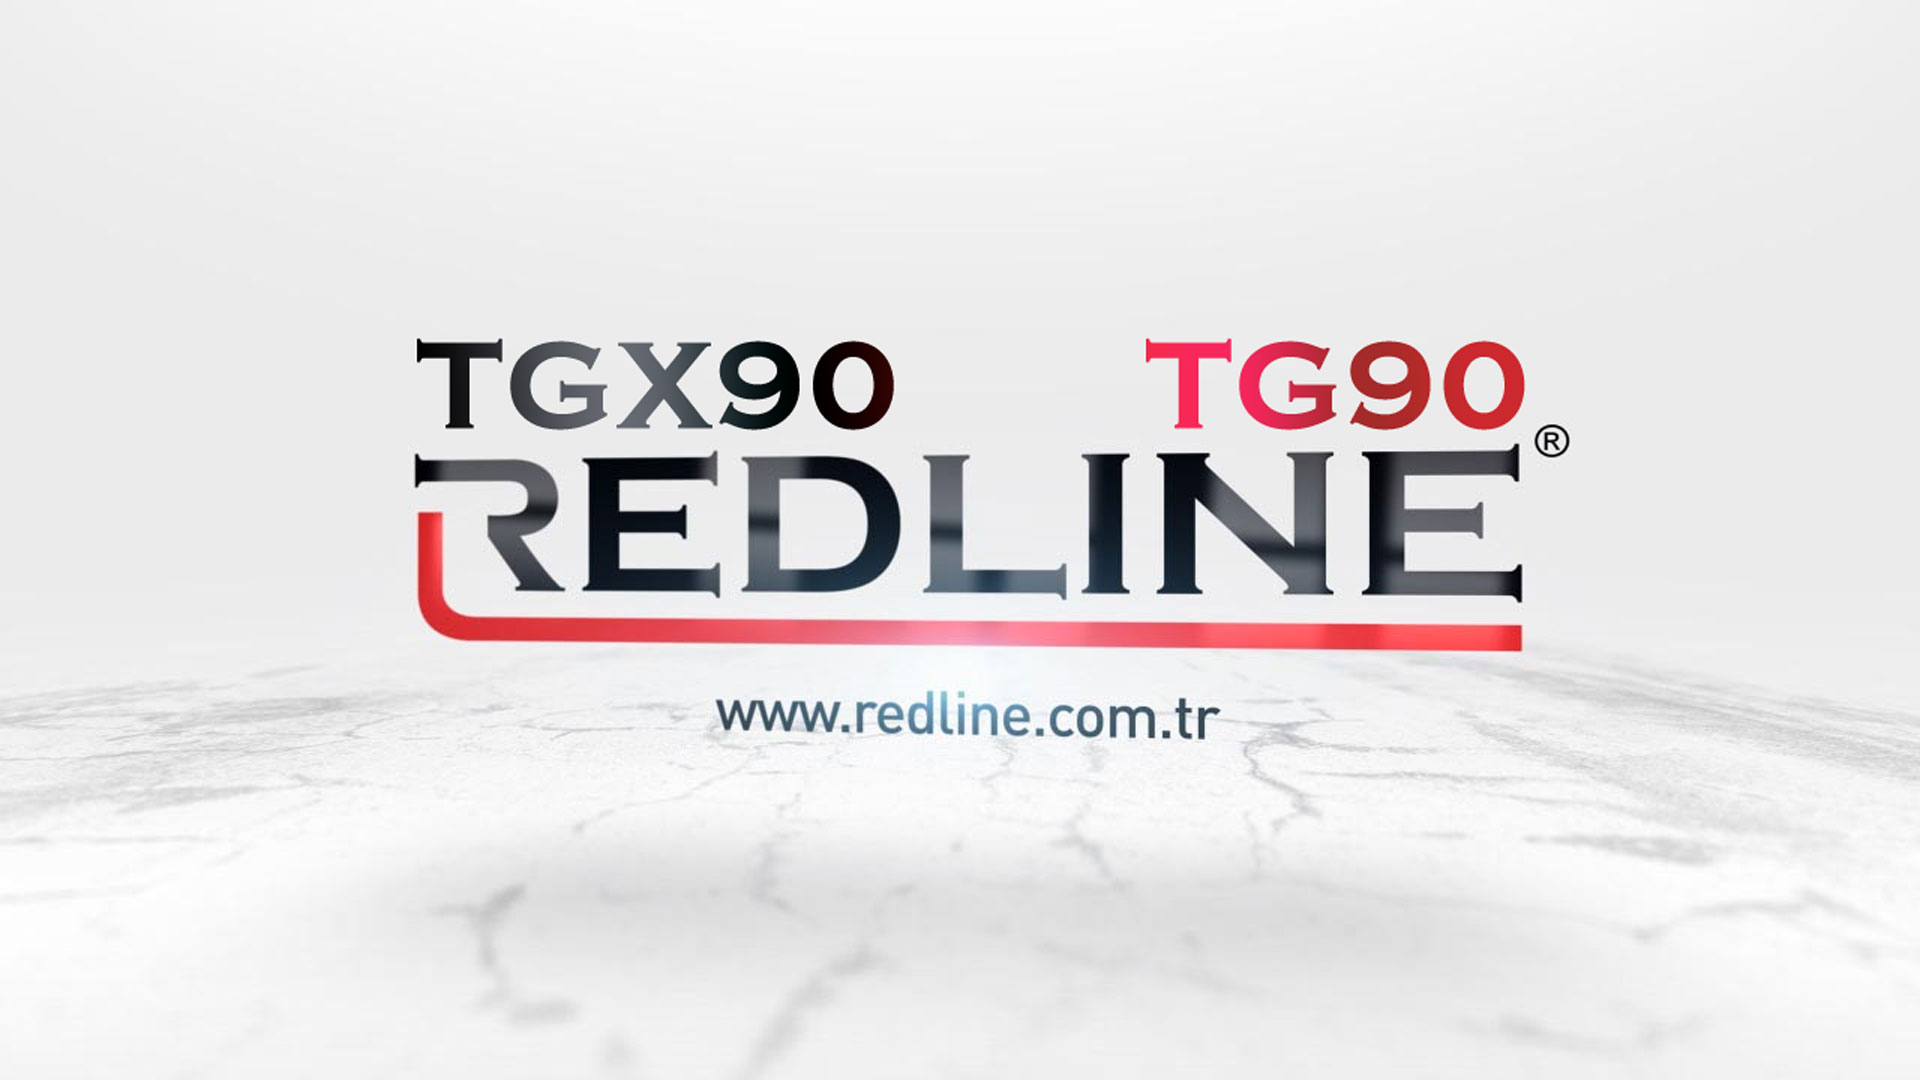 Download Software Redline TG 90 Full HD TGX90 Firmware Receiver